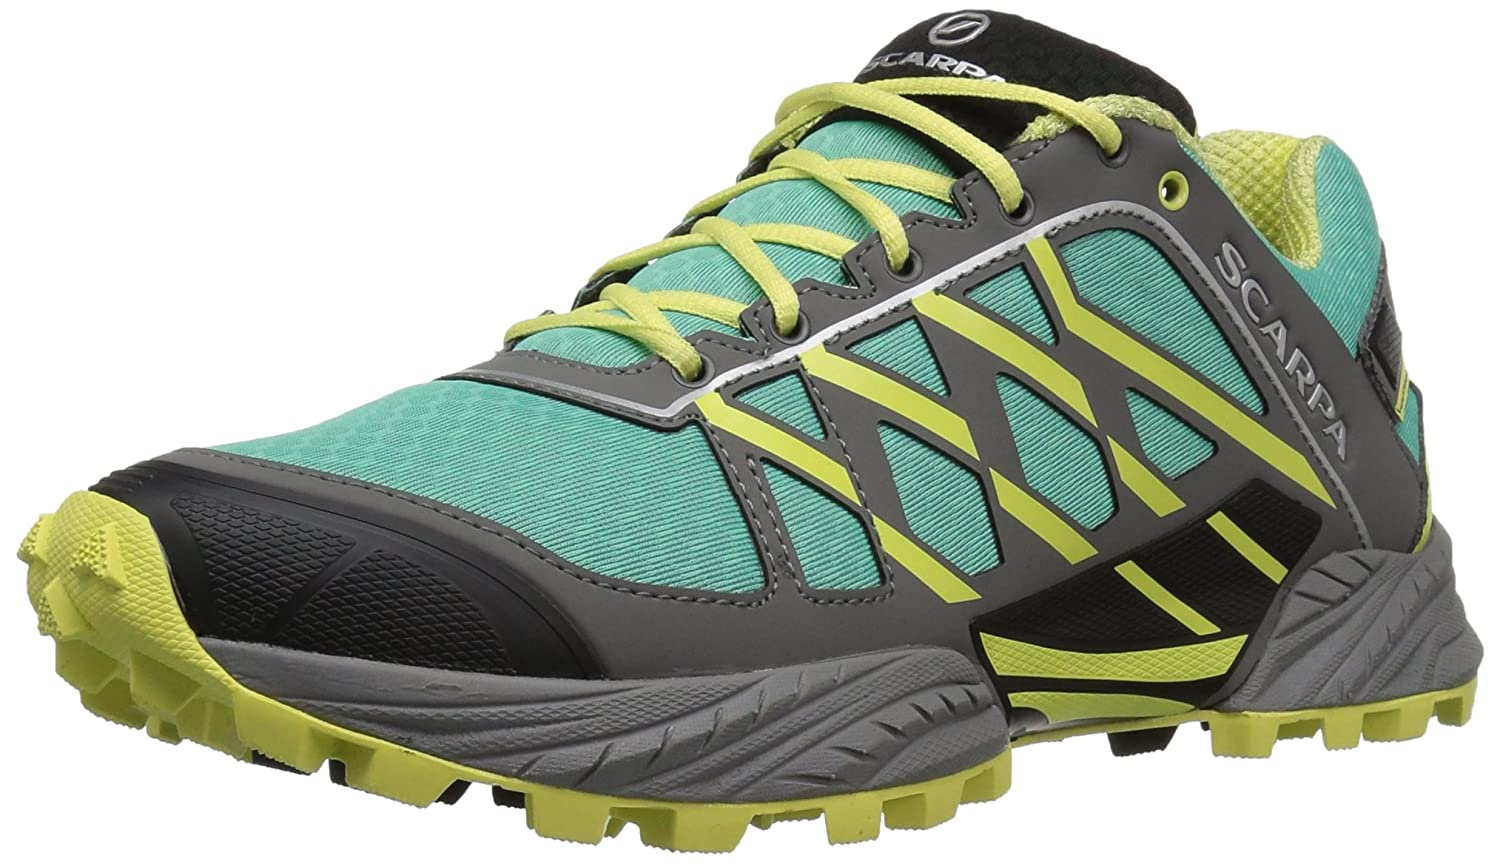 SCARPA Women's Neutron Wmn Running Shoe Trail Runner B0126JP66U 40.5 EU/8.6666666666666661 M US|Lagoon/Lemon